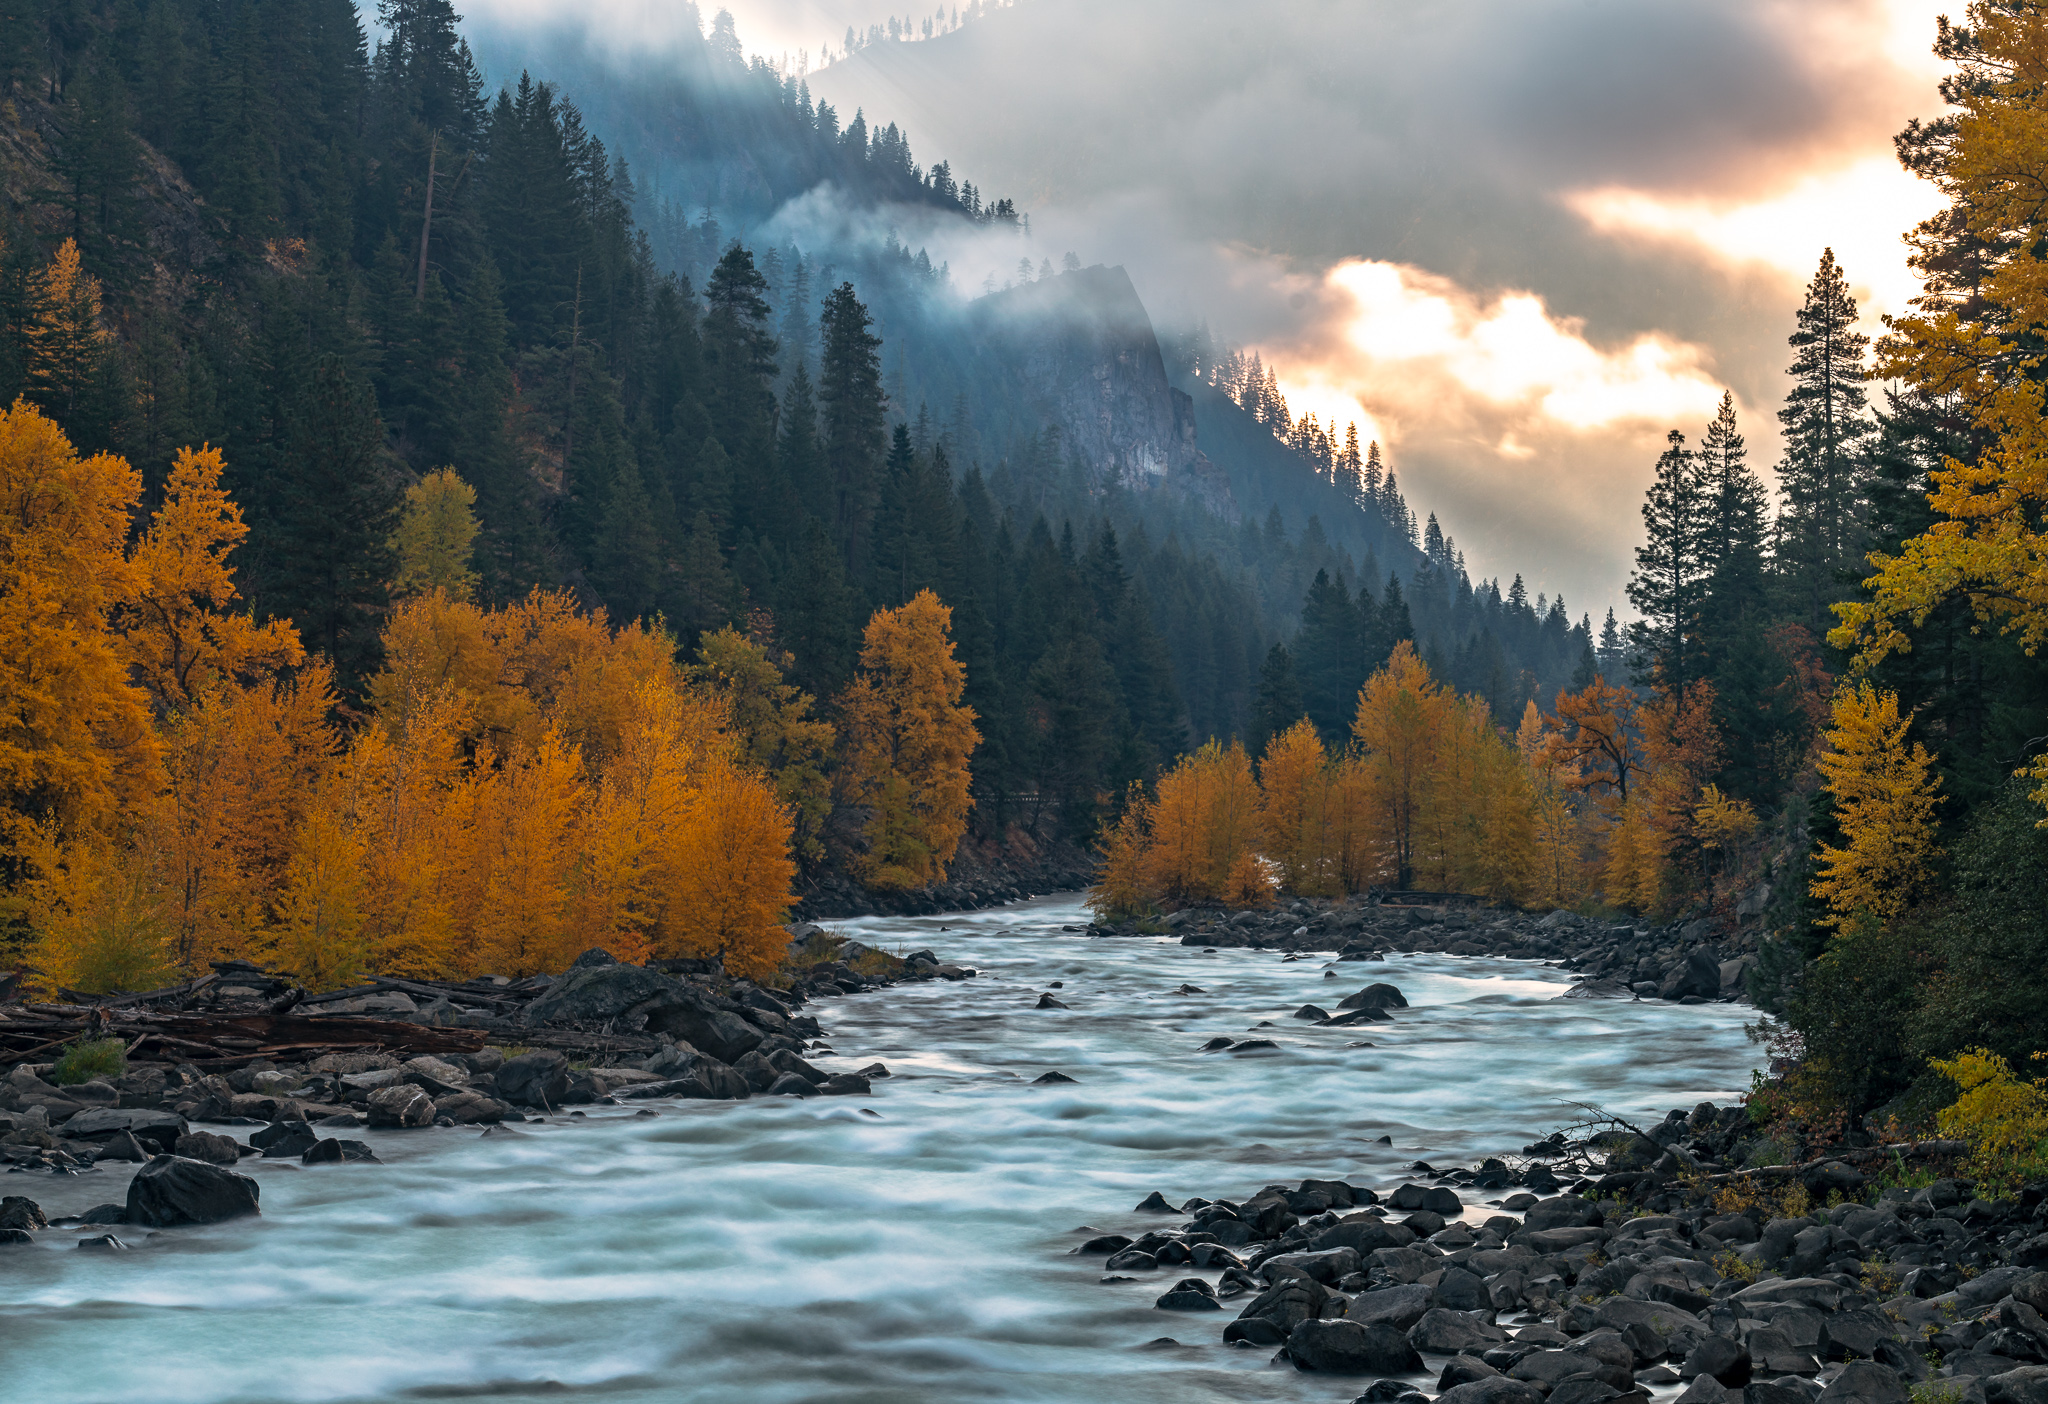 Sunrise in the canyon, near Leavenworth.